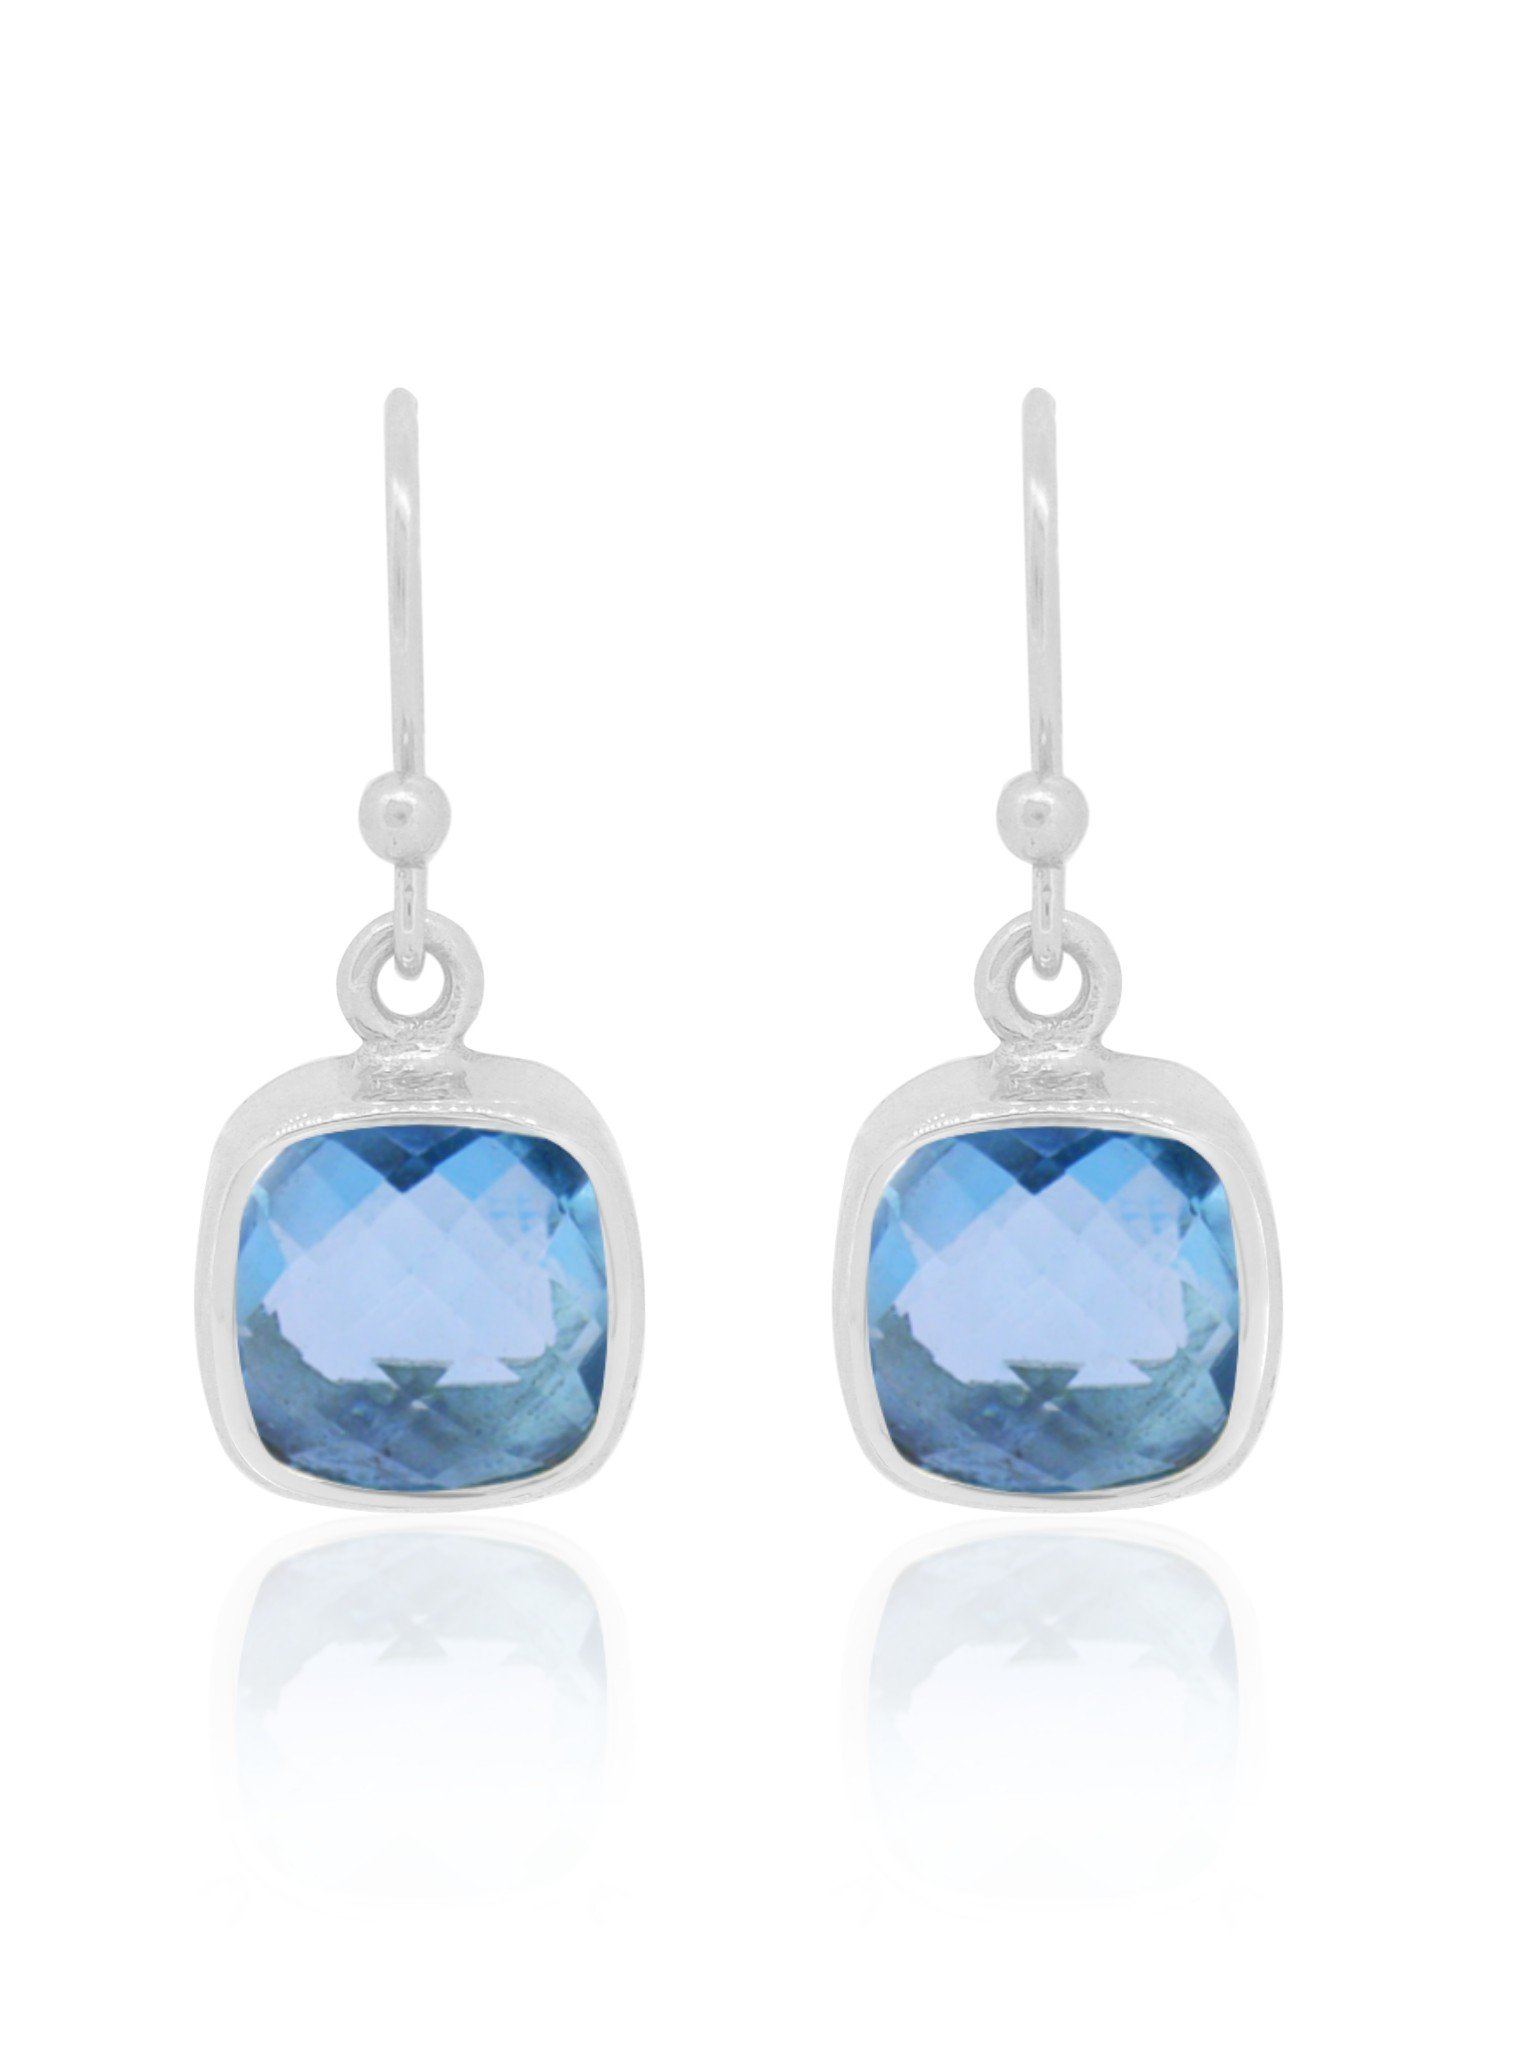 Indie Blue Topaz Gemstone Earrings in Silver